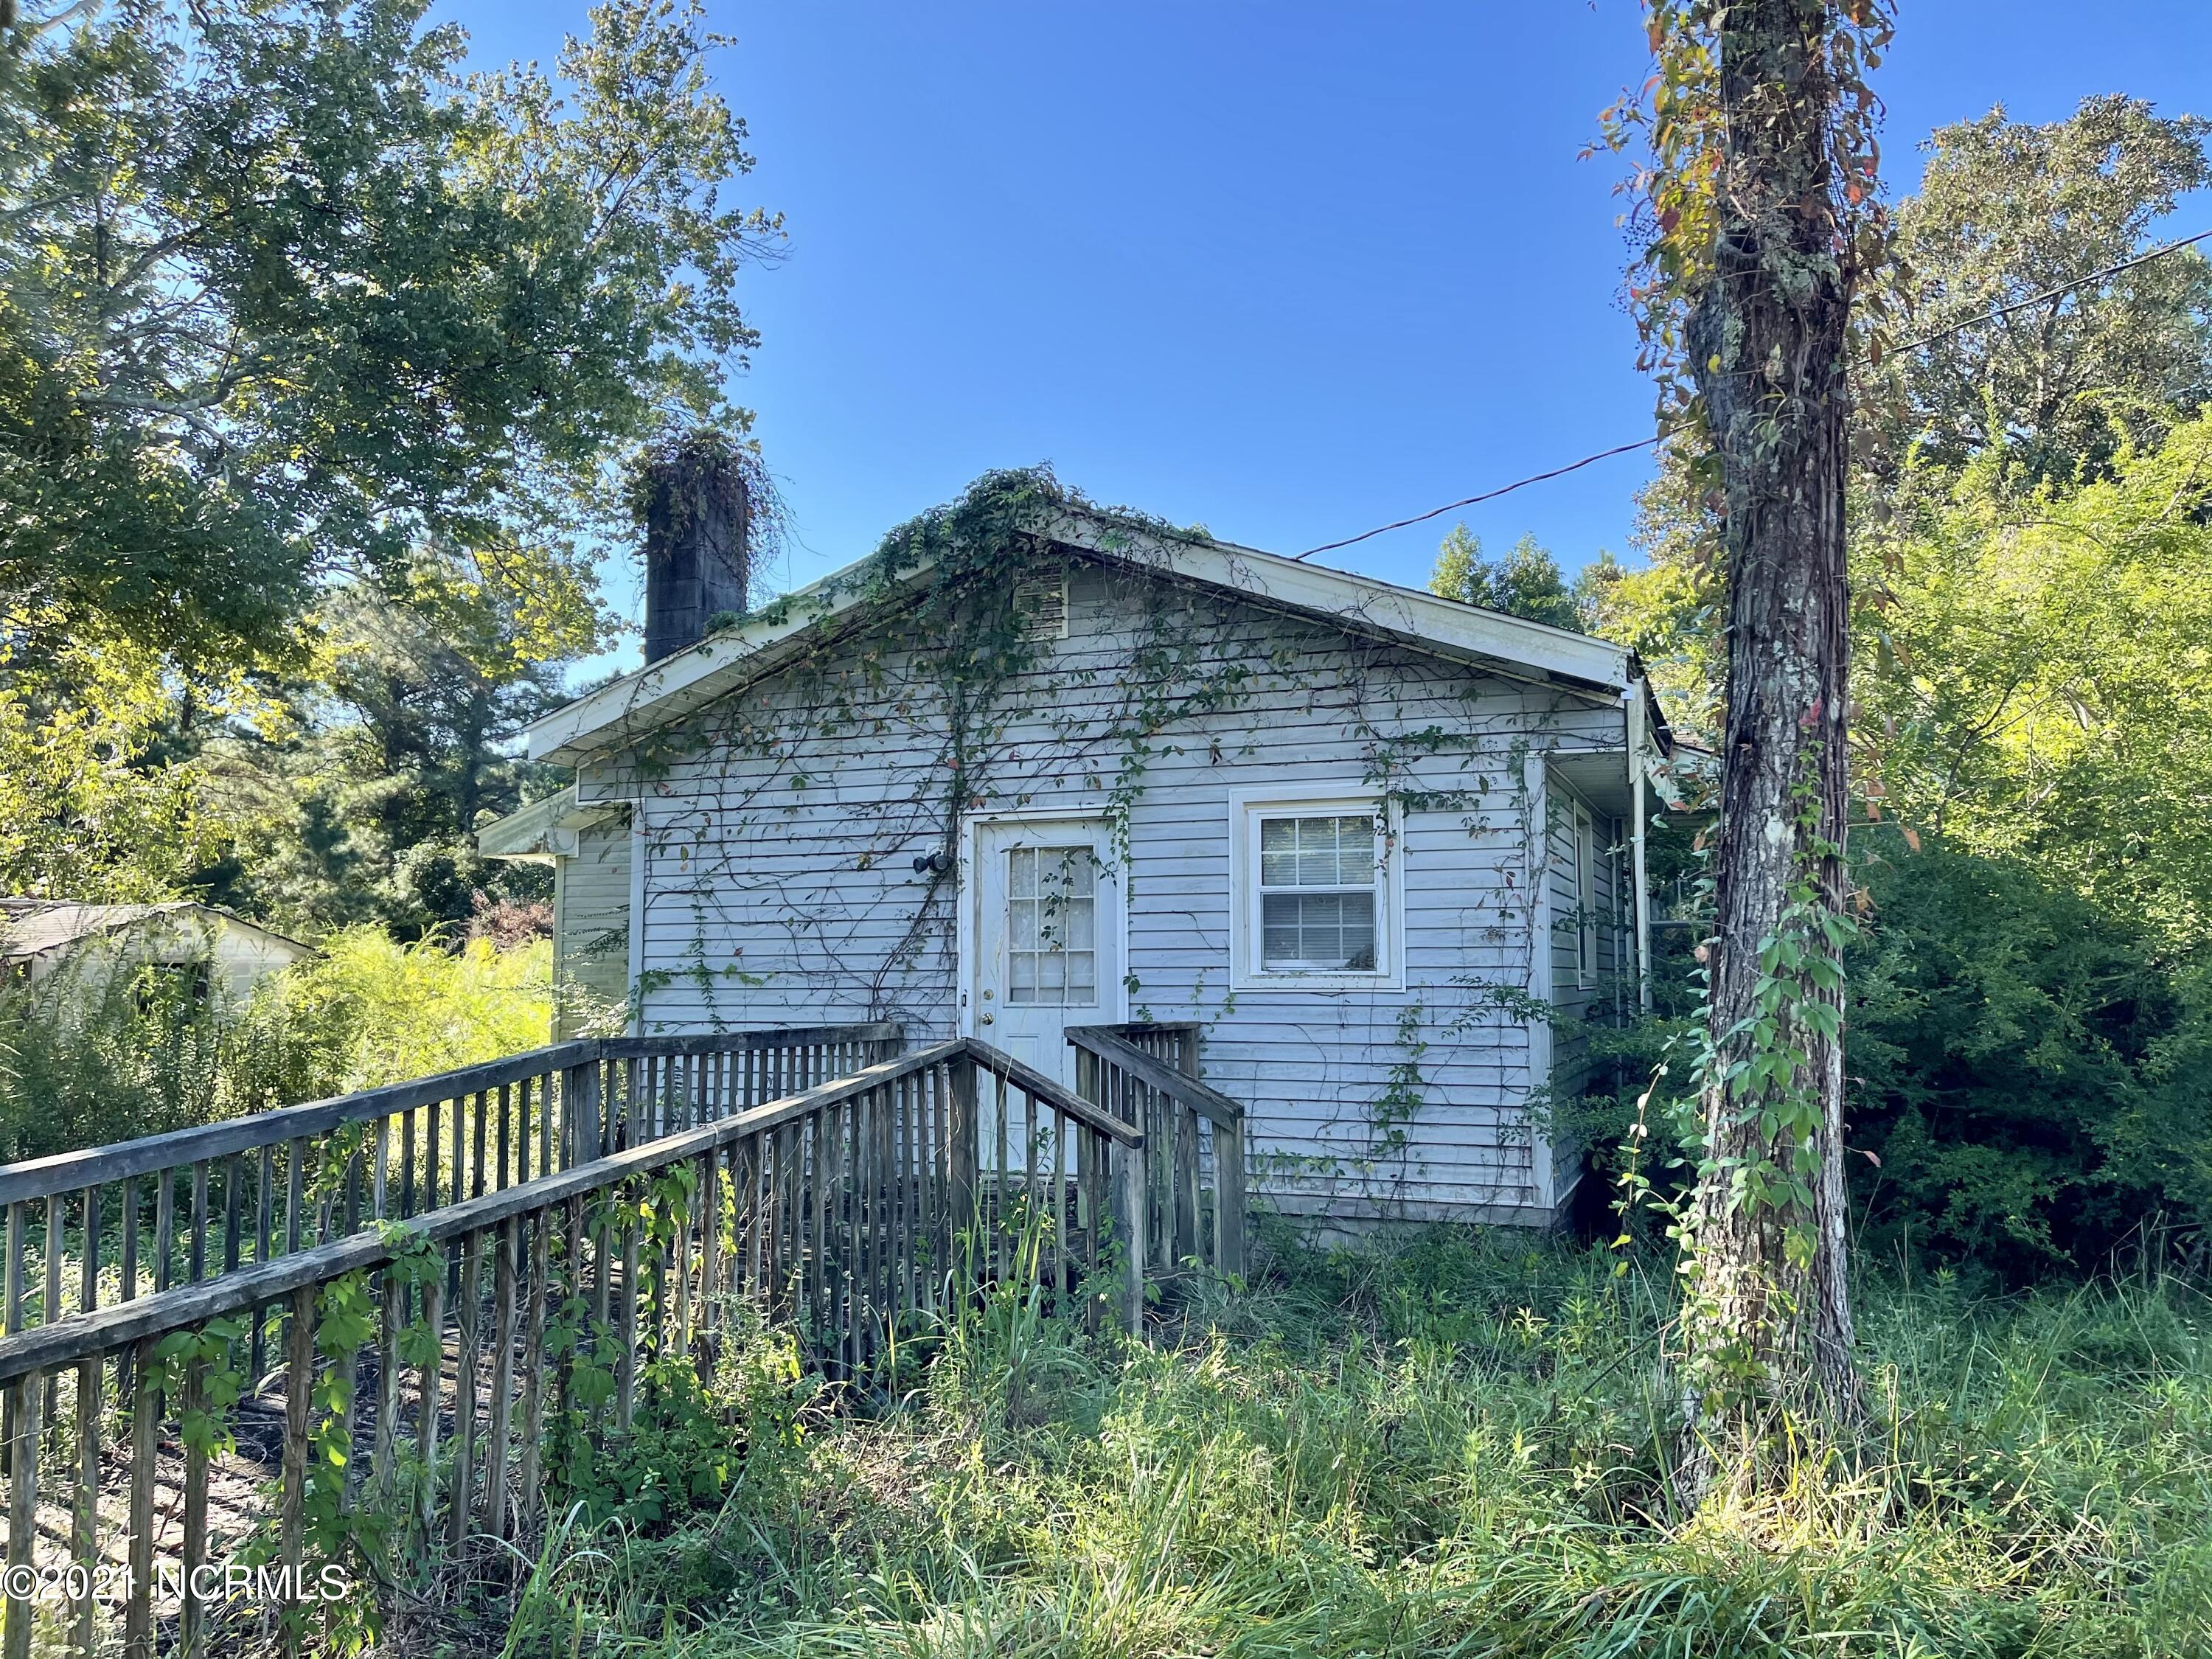 Great Location! 1.5 acres by Mill Creek Rd and Hwy 50, less than 5 miles from the Surf City bridge. Land Value only, Property will be sold ''As Is'' no repairs will be done.  455 ft of Road Frontage on NC Hwy 50. Existing home has not been lived in for several years. There are partial outbuildings. The structure to the left used to be a Country Store. Just minutes to Topsail Island